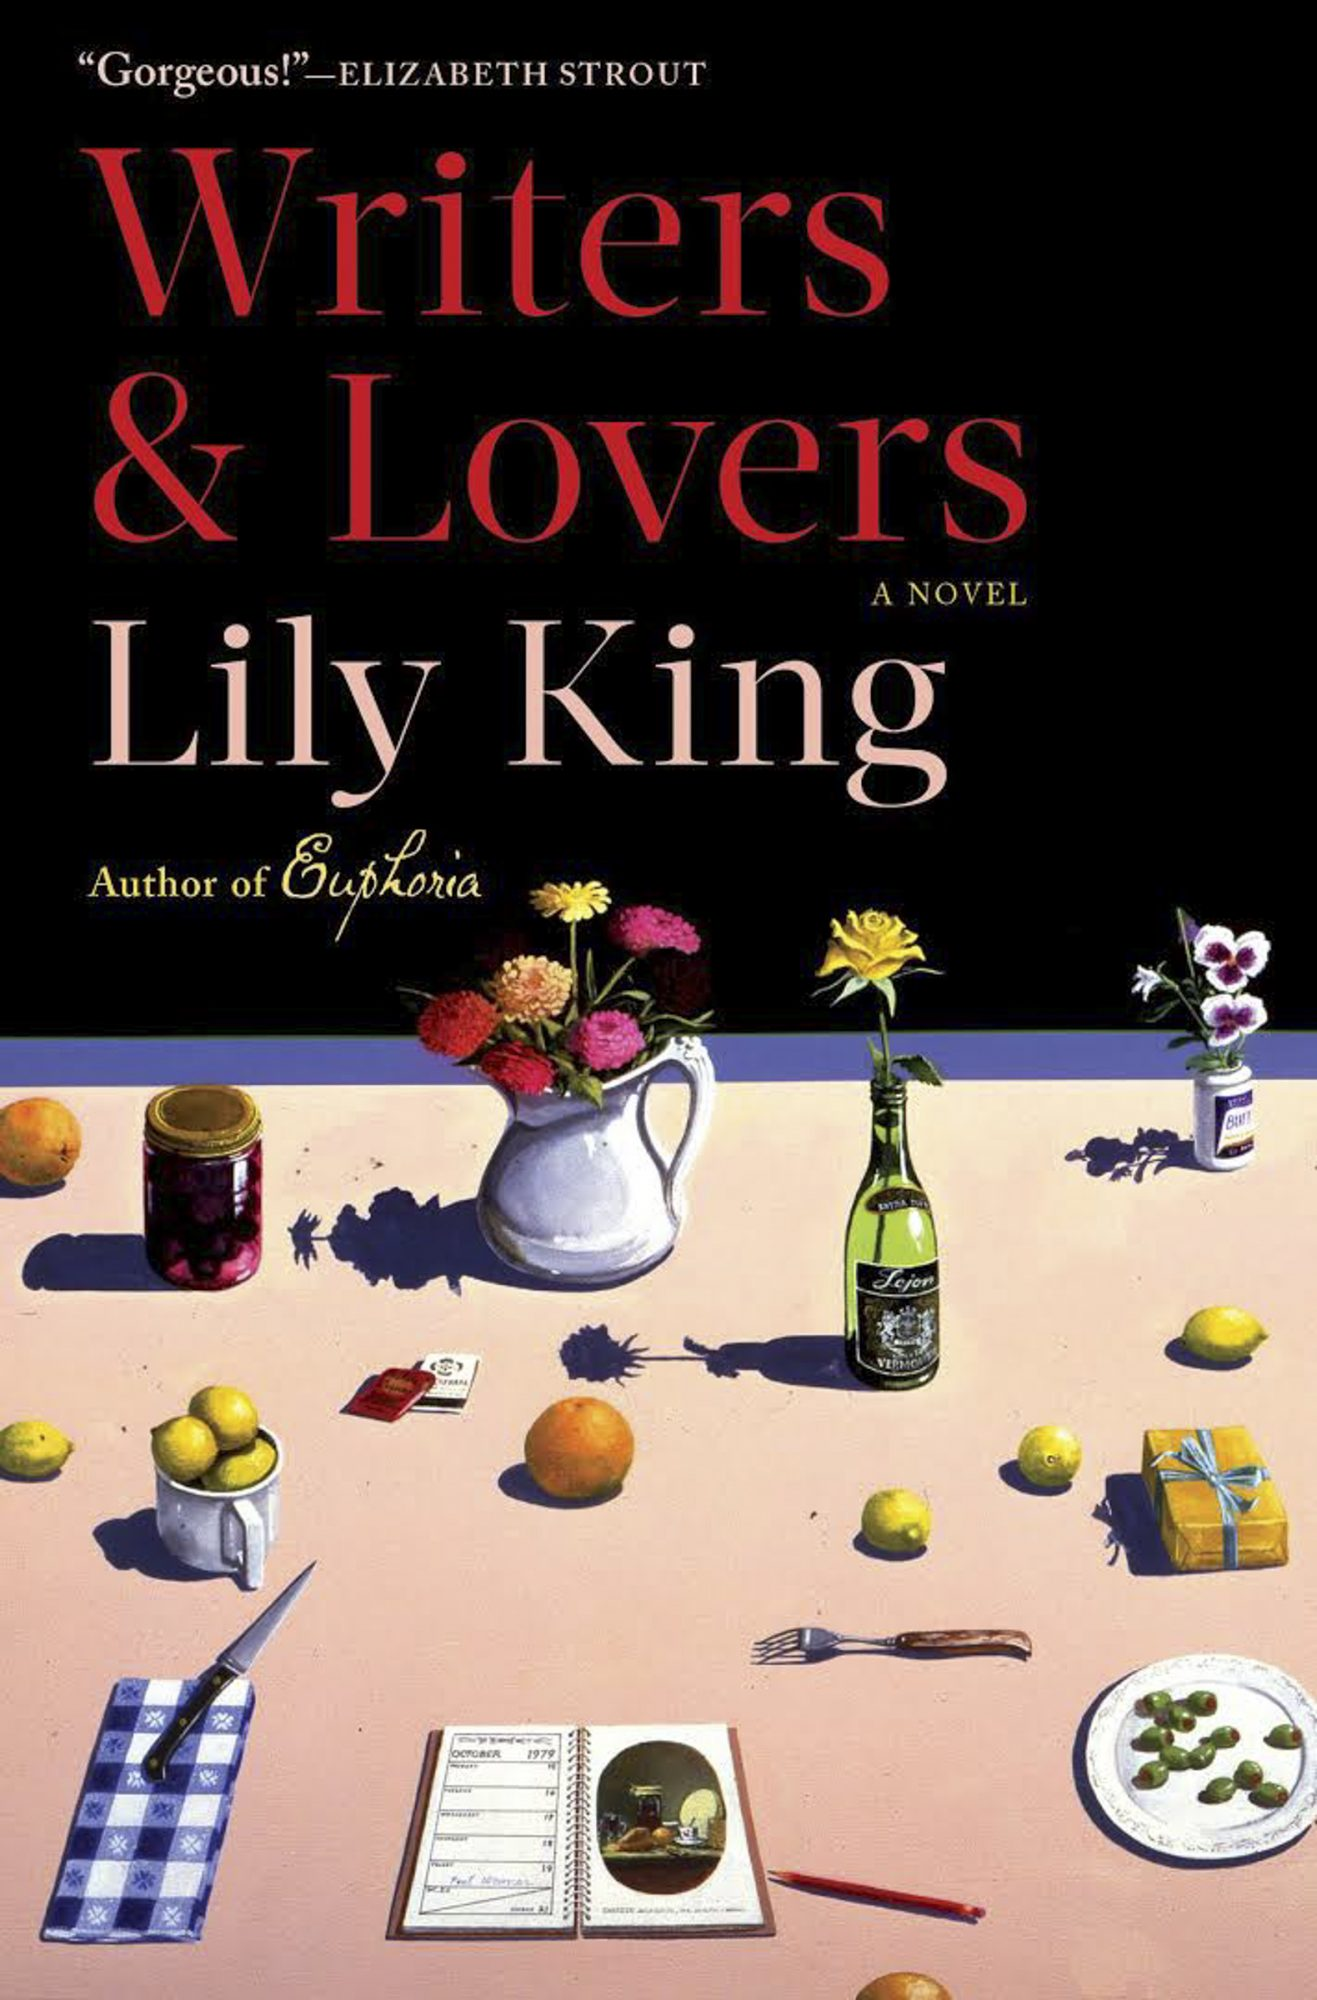 Writers & Lovers by Lily King CR: Grove PressWriters & Lovers by Lily King CR: Grove Press